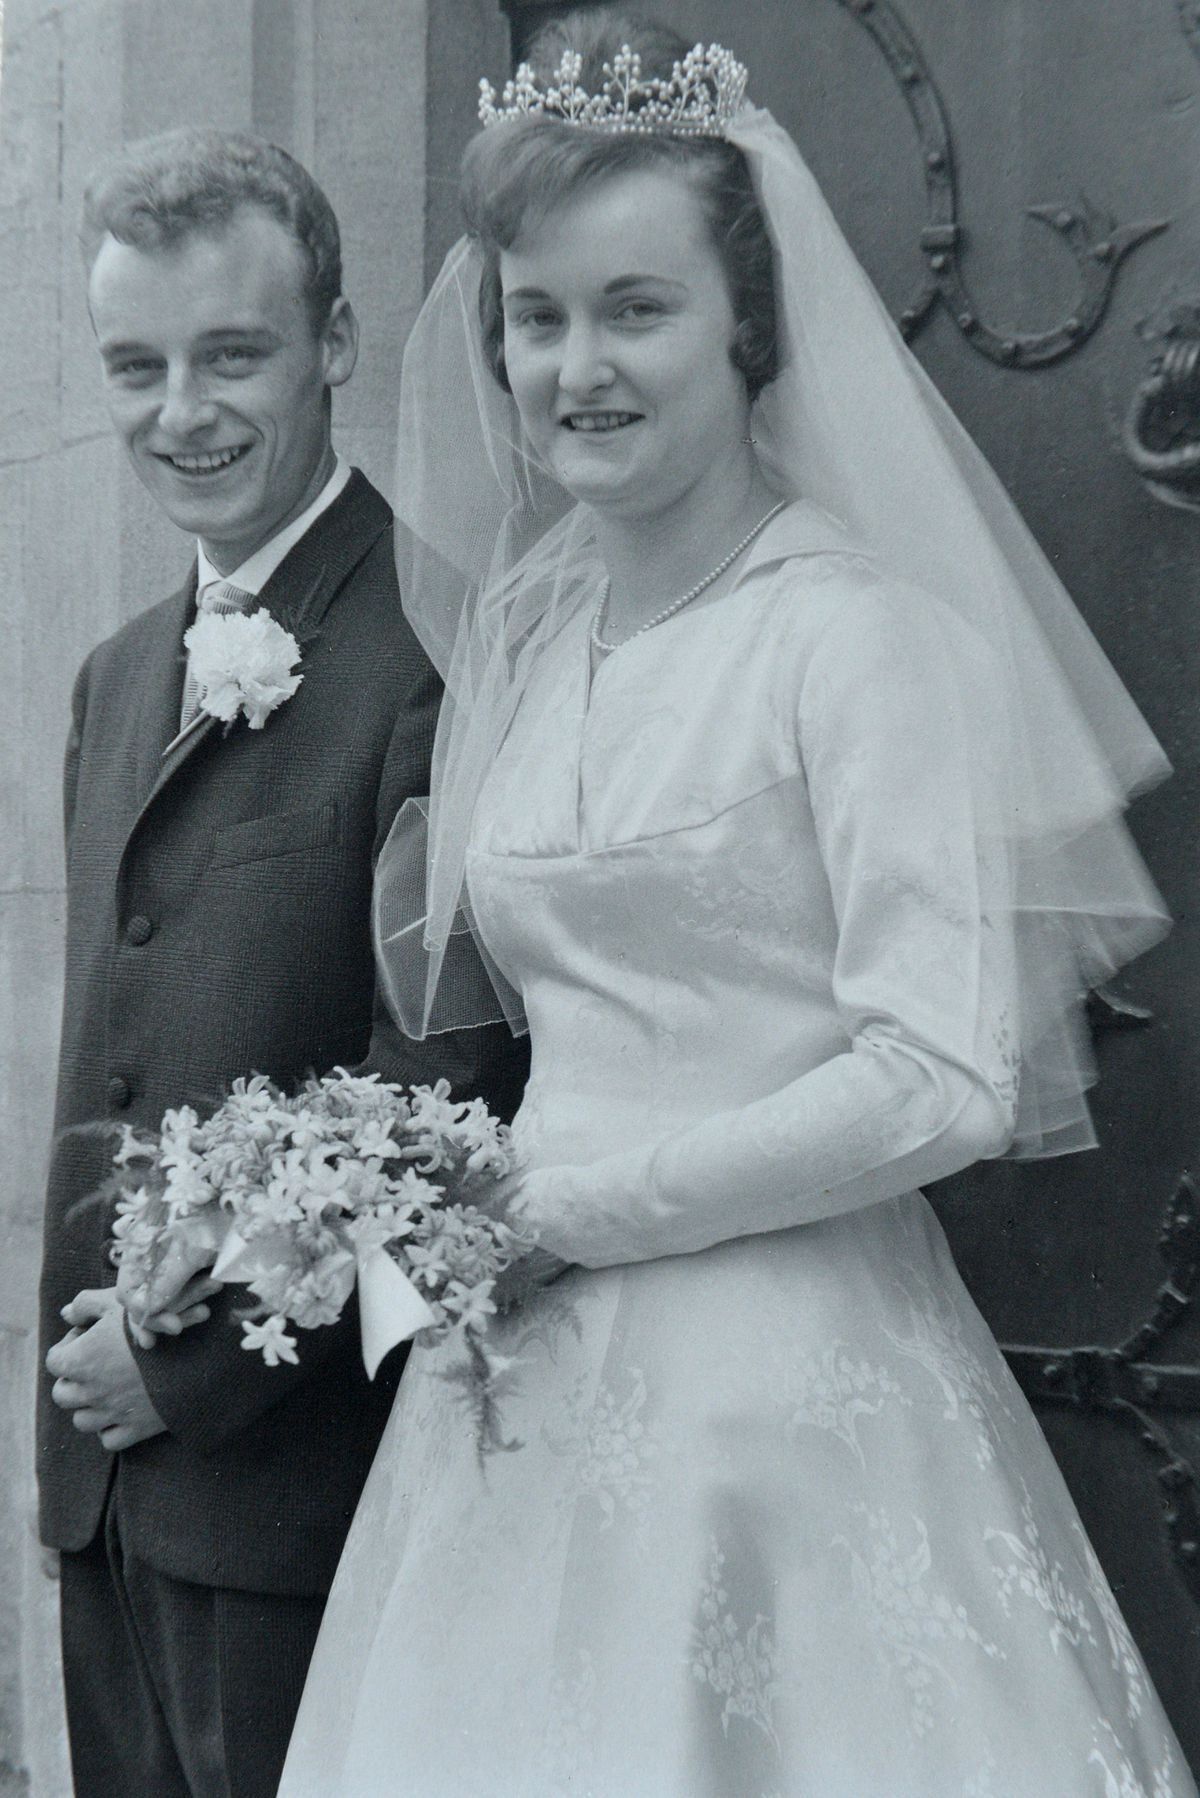 John and Enid White on their wedding day in 1961